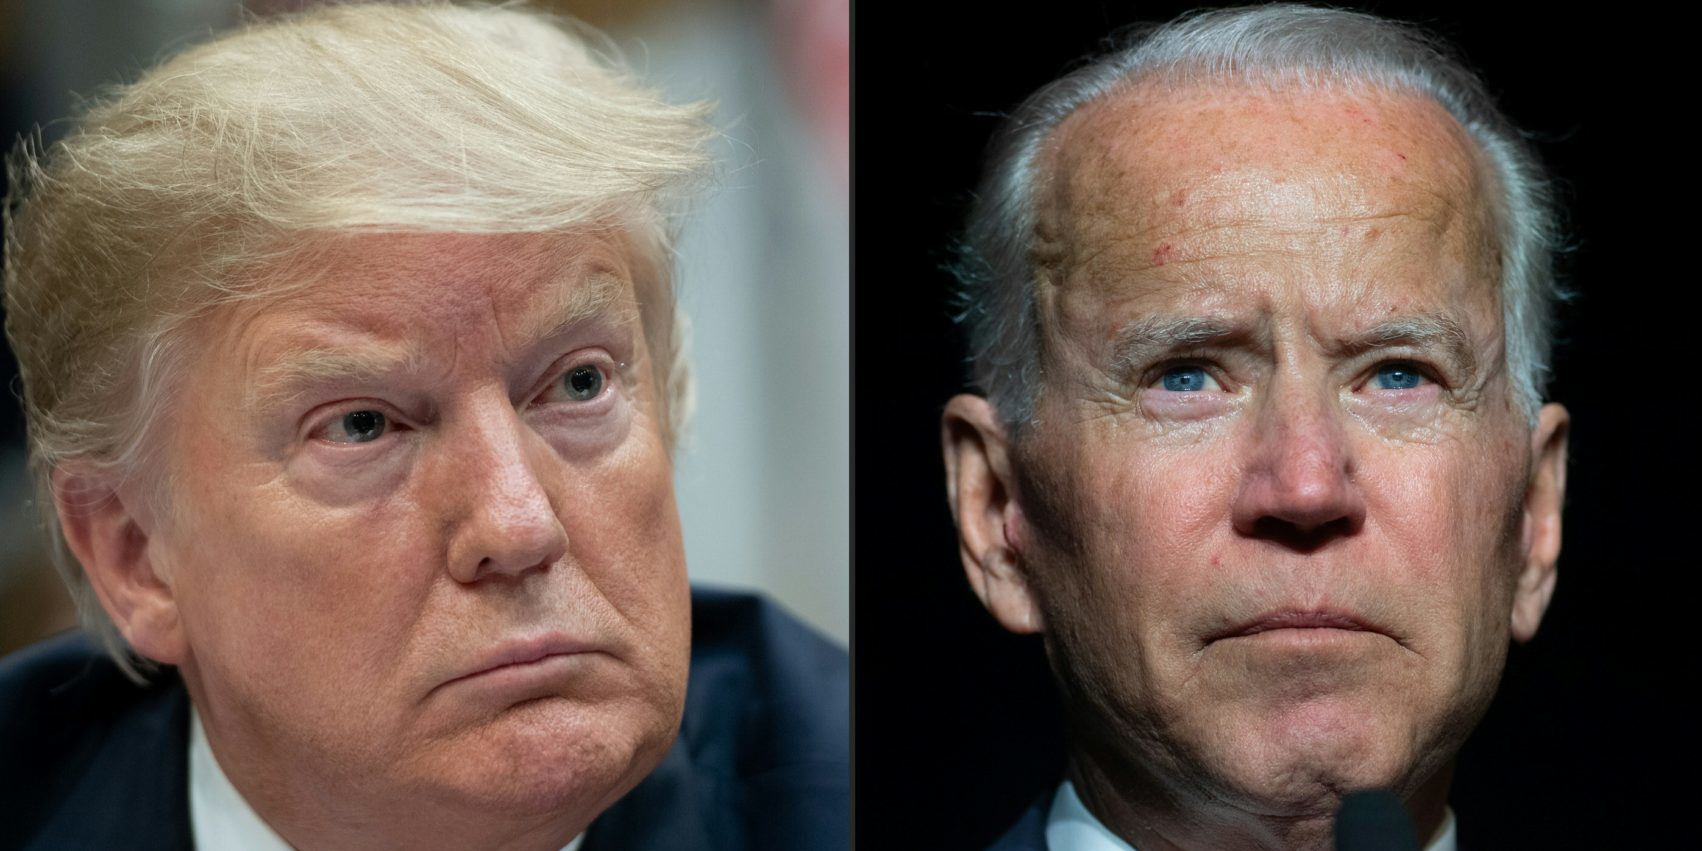 This combination of pictures created on March 18, 2019 shows (l-r) US President Donald Trump listens during a meeting on drug trafficking on the Southern Border of the US in the Roosevelt Room of the White House in Washington, DC, March 13, 2019, former US Vice President Joe Biden speaks during the First State Democratic Dinner in Dover, Delaware, on March 16, 2019 (SAUL LOEB,JIM WATSON/AFP via Getty Images)